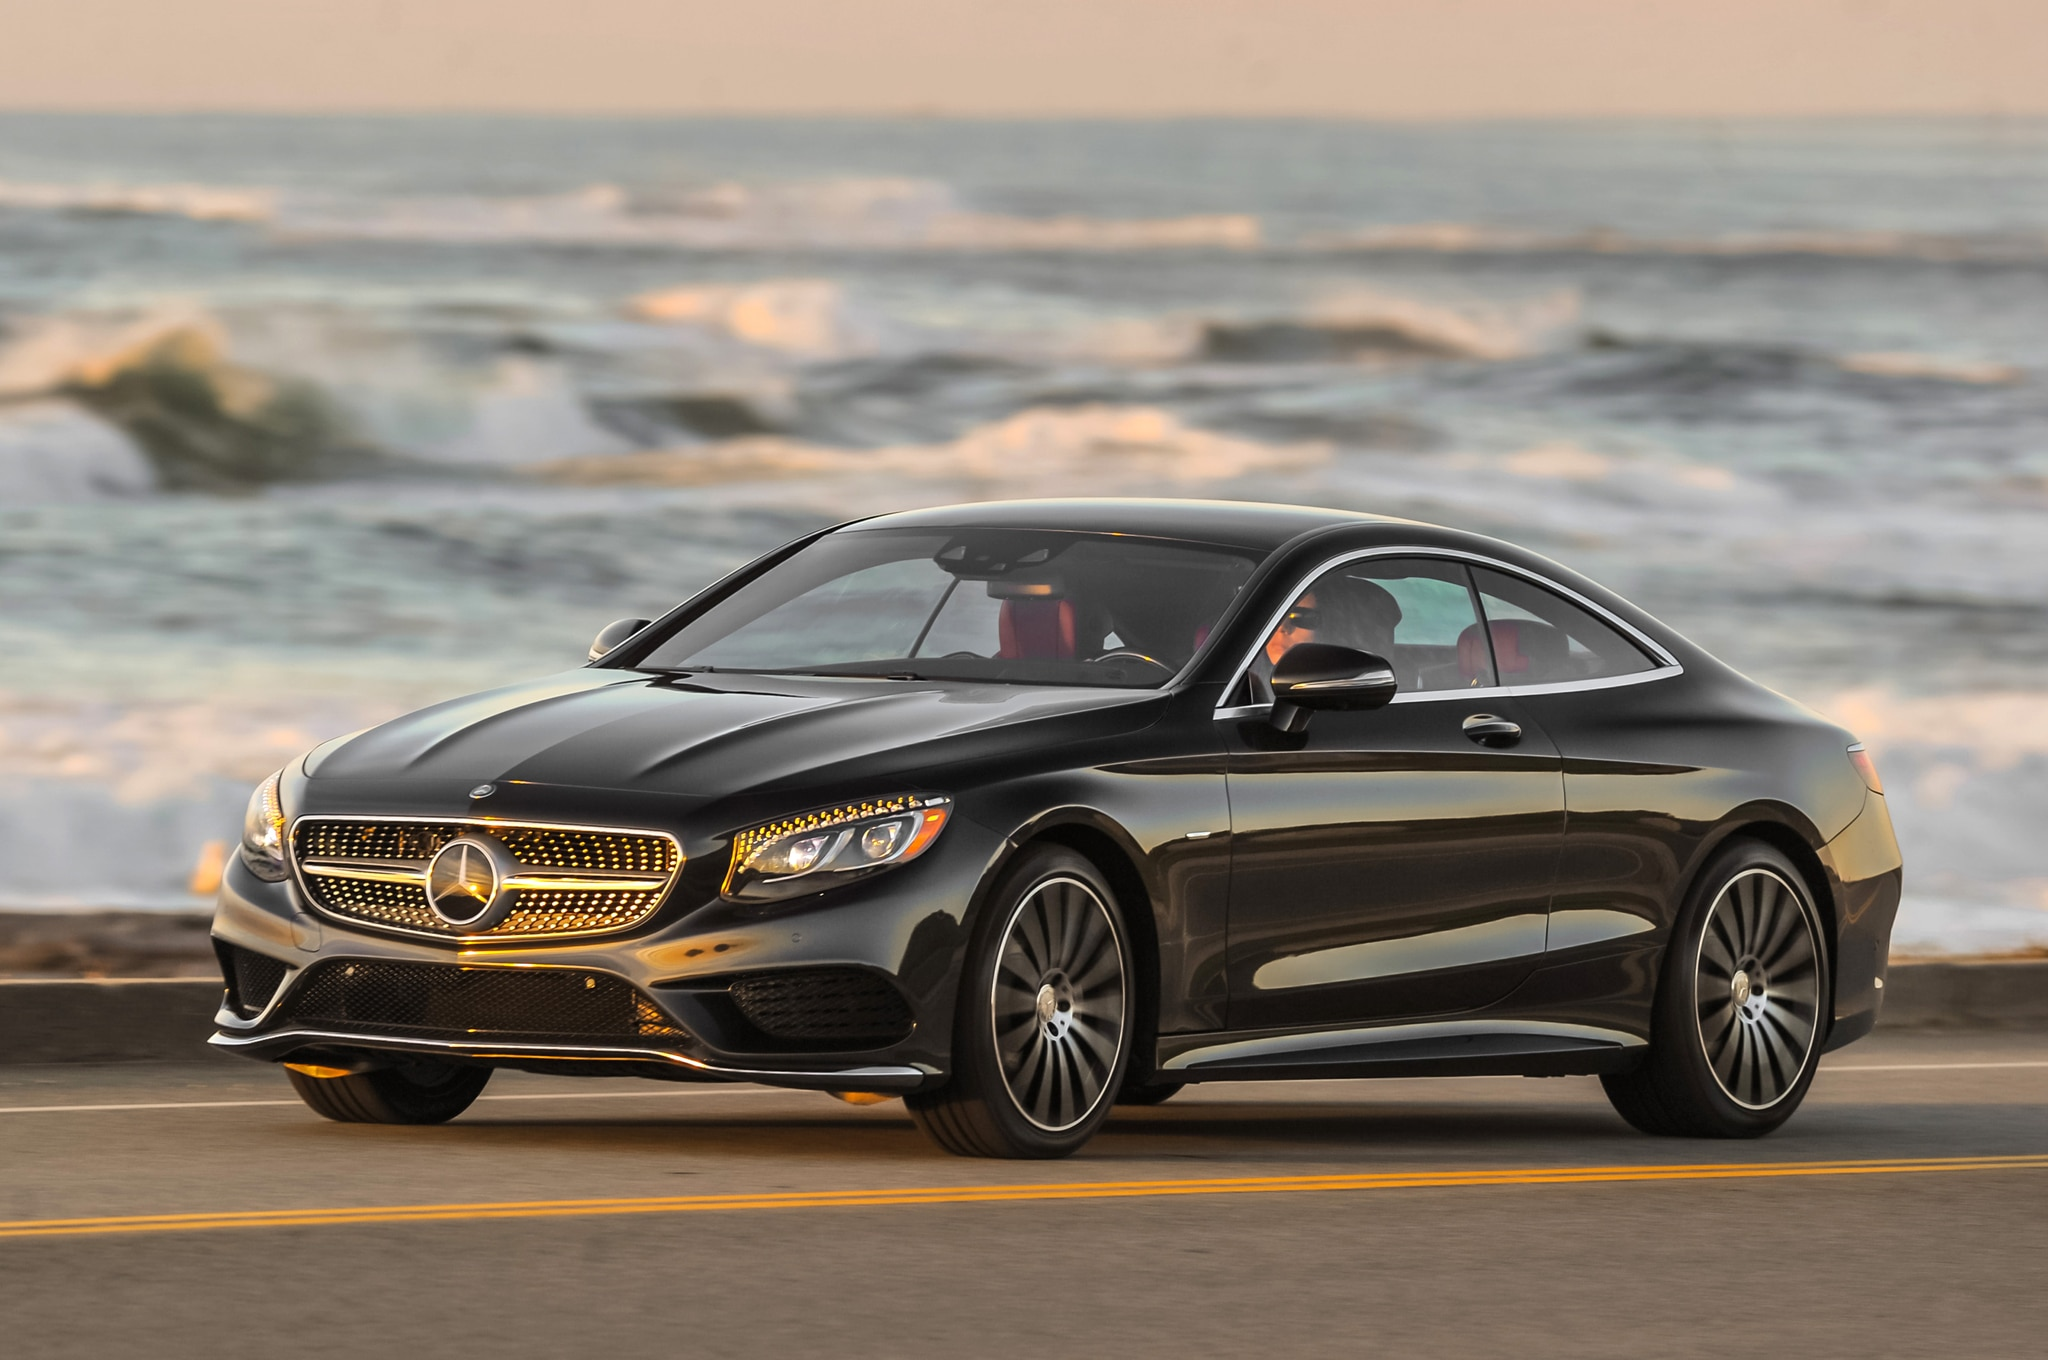 2015 mercedes benz s550 4matic coupe review for 2014 mercedes benz s550 4matic